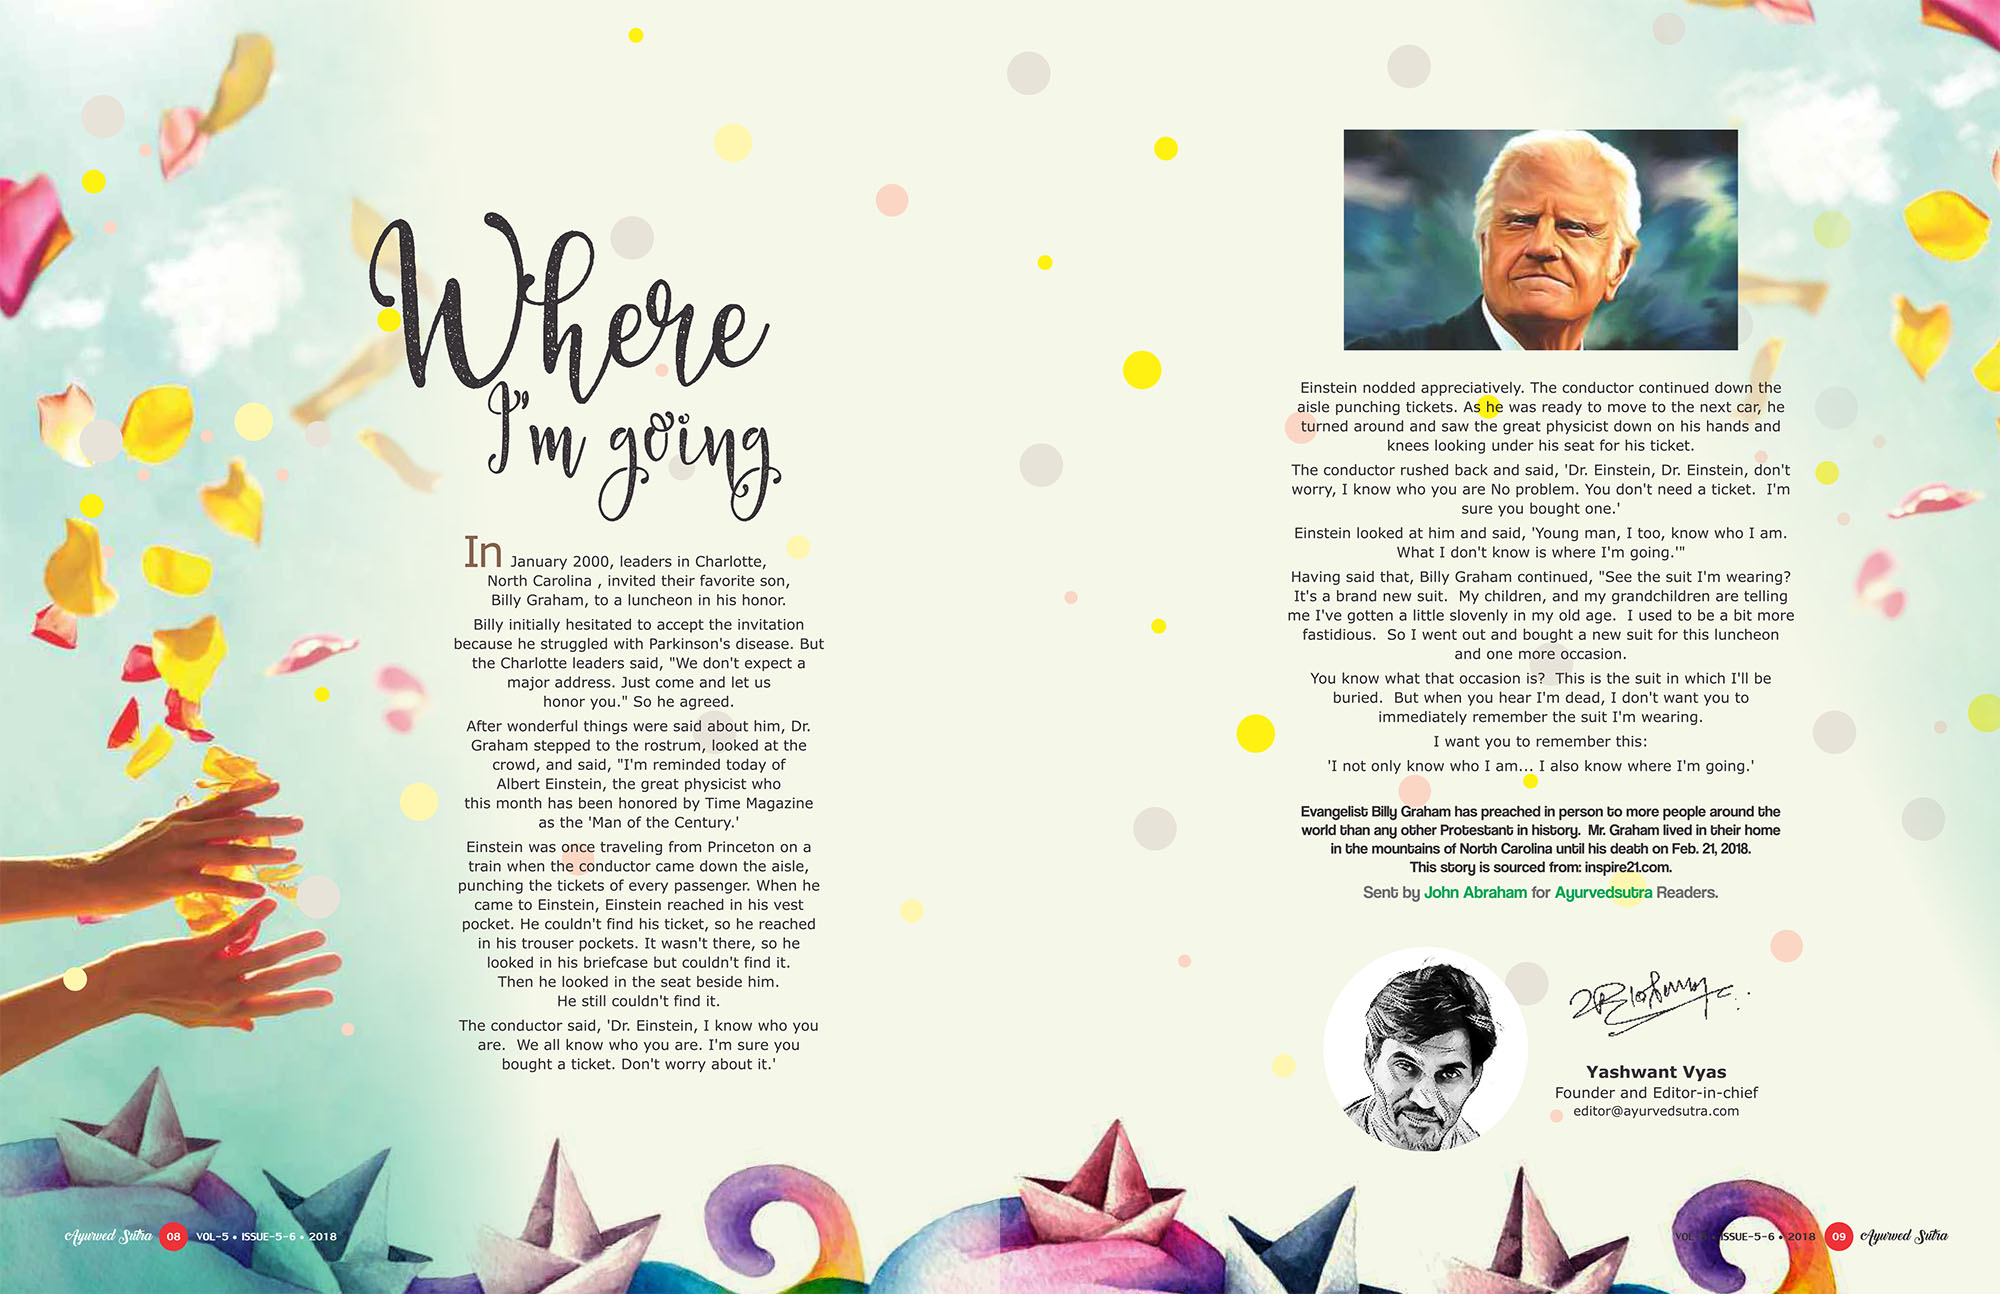 Ayurvedsutra Vol 05 issue 05 06 10 - Where I'm going